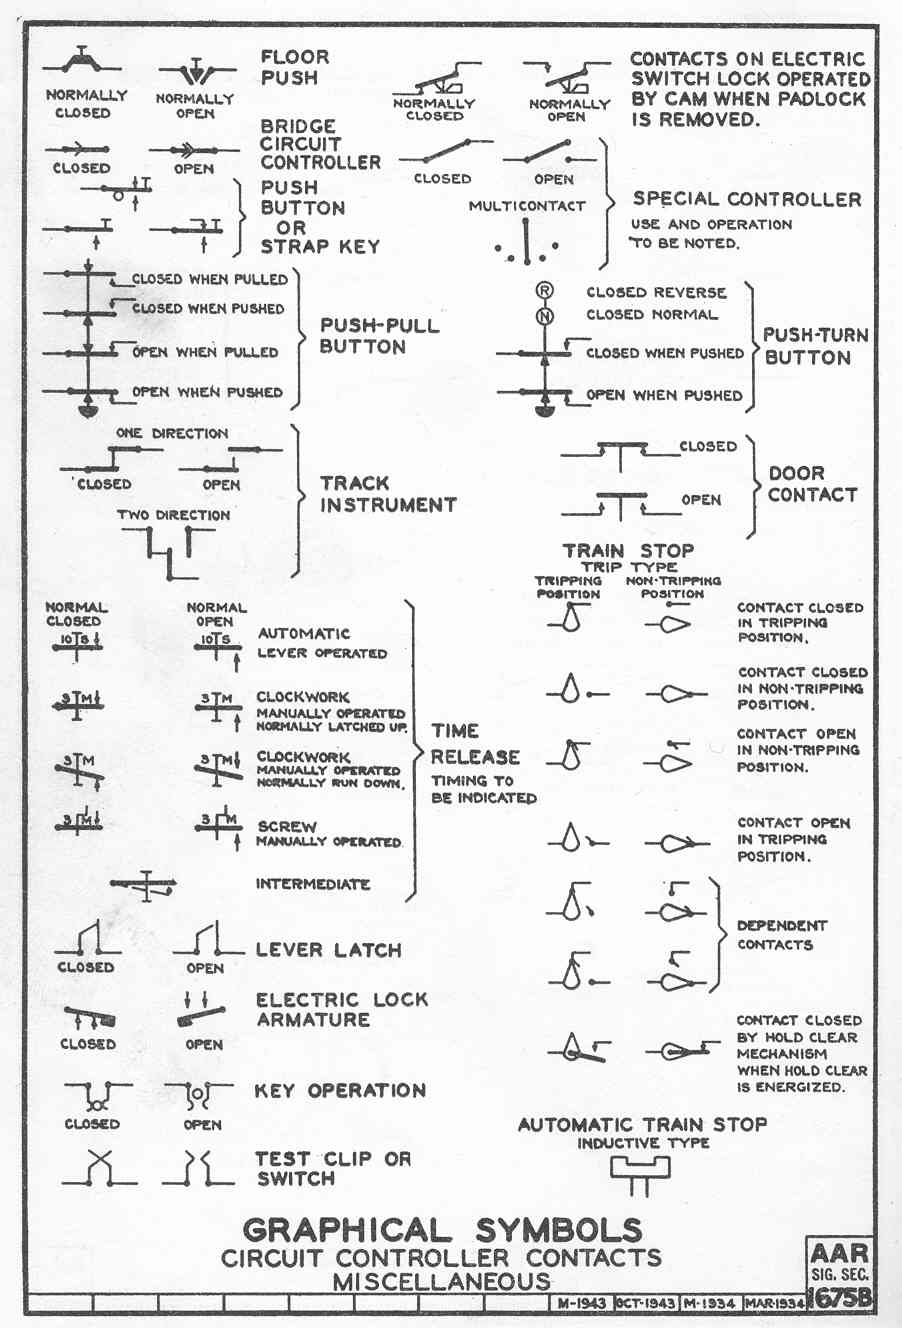 Electrical Wiring Symbol Definitions - DIY Wiring Diagrams •